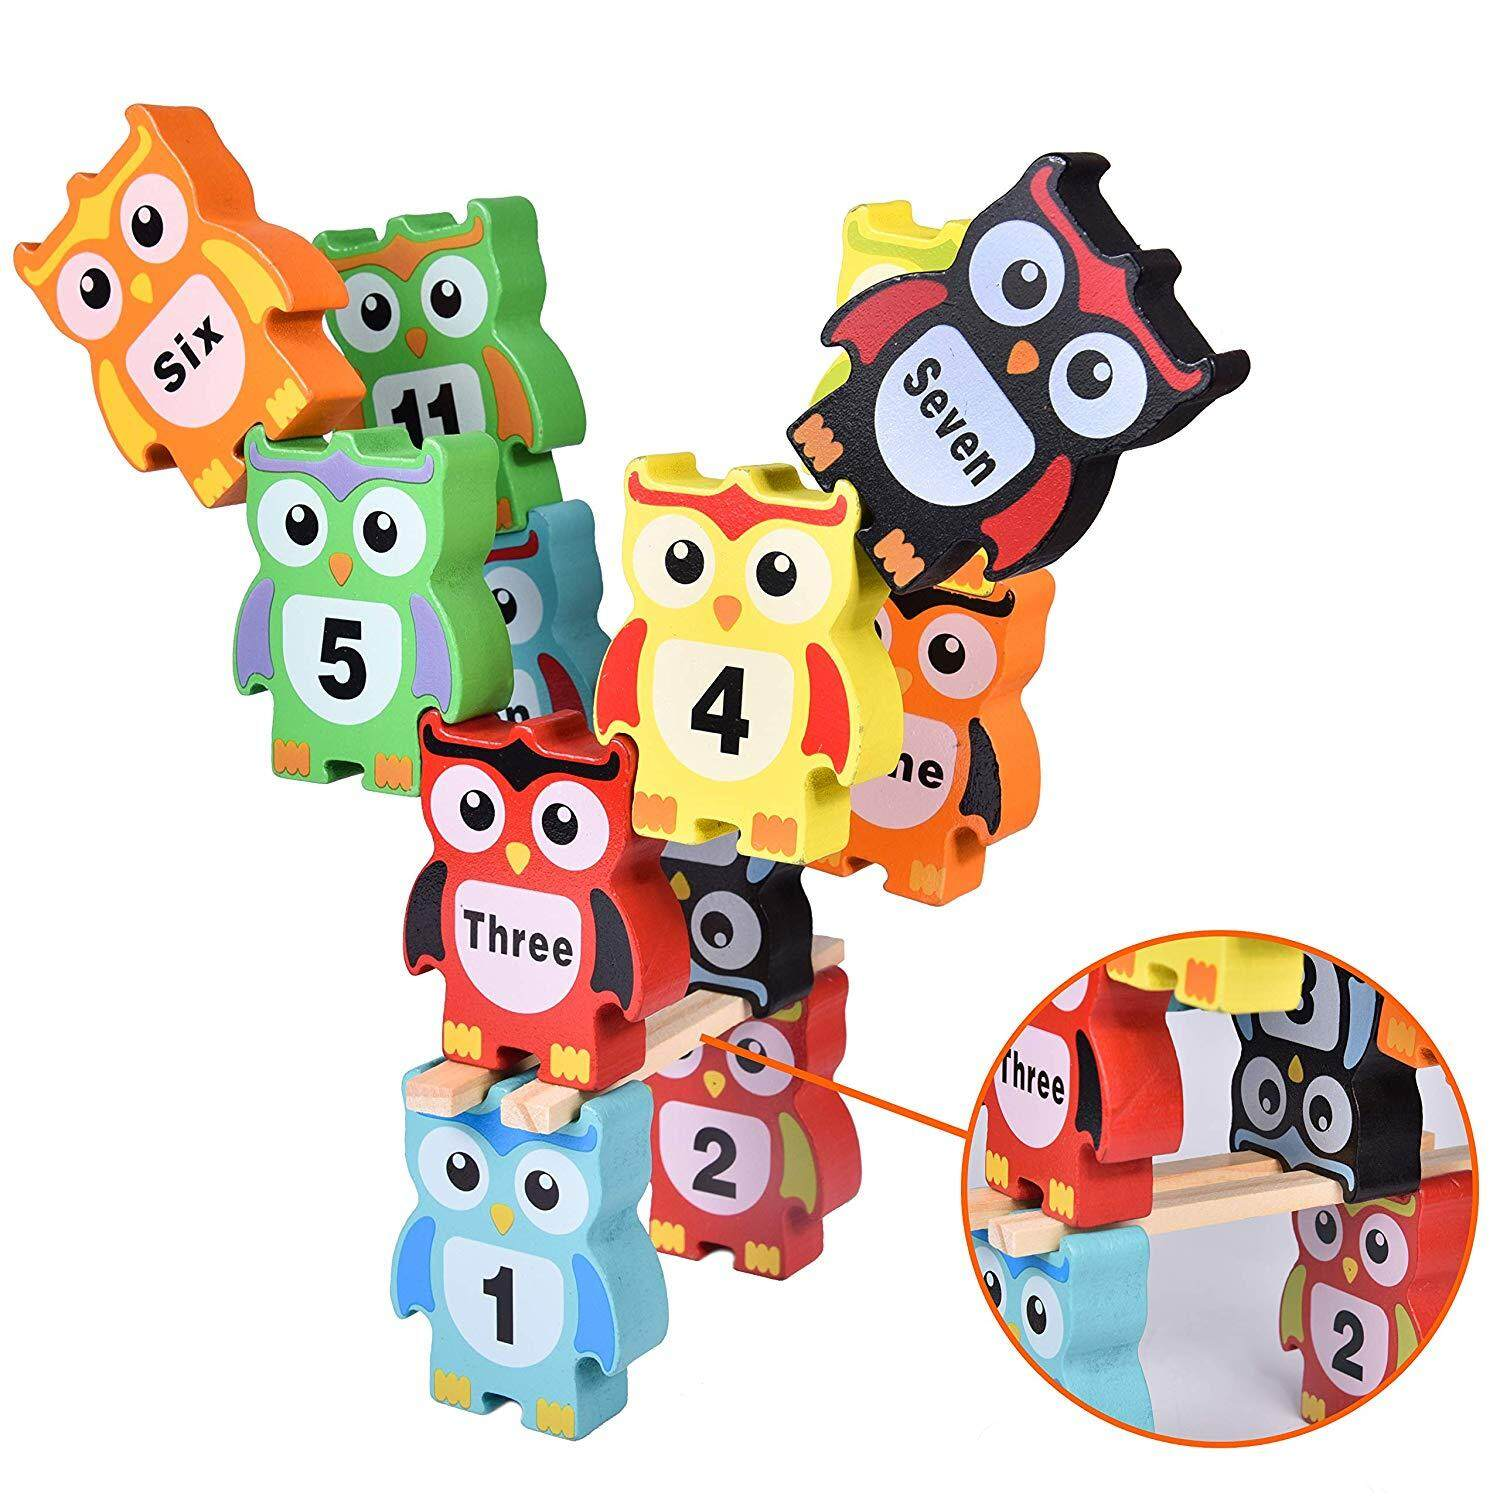 55 Pcs Wooden Owl Stacking Blocks Toy Set Educational Building Blocks Toy Balance Game for Kids Learning Number Ideal Christmas Birthday Gift